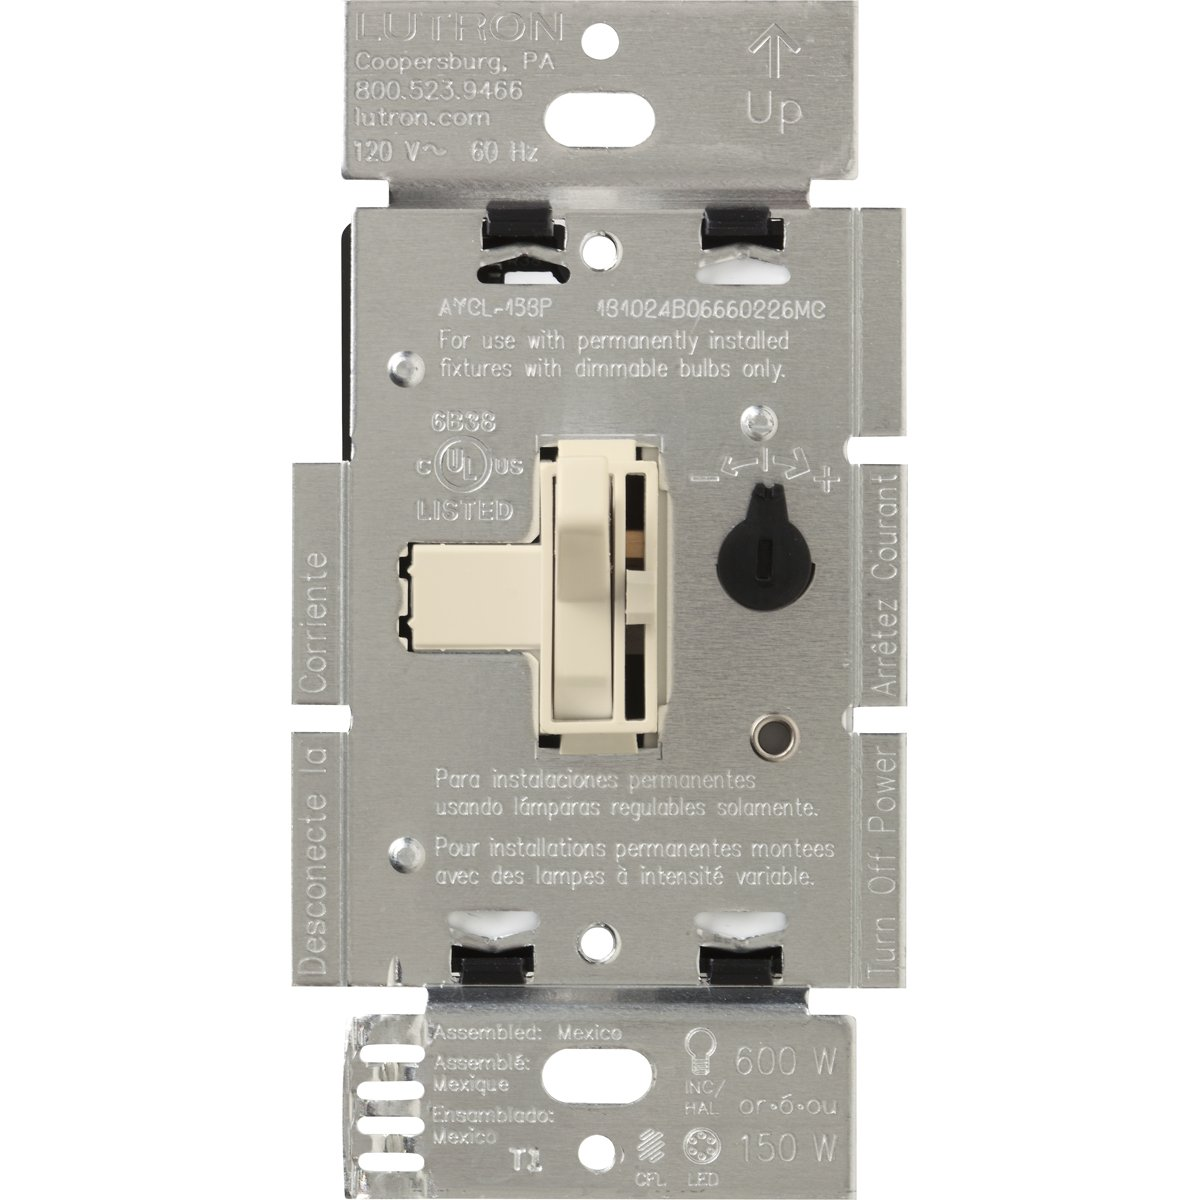 71WQR FMfhL._SL1200_ lutron tgcl 153ph la toggler cfl led single pole 3 way toggler lutron ayfsq-f wiring diagram at crackthecode.co